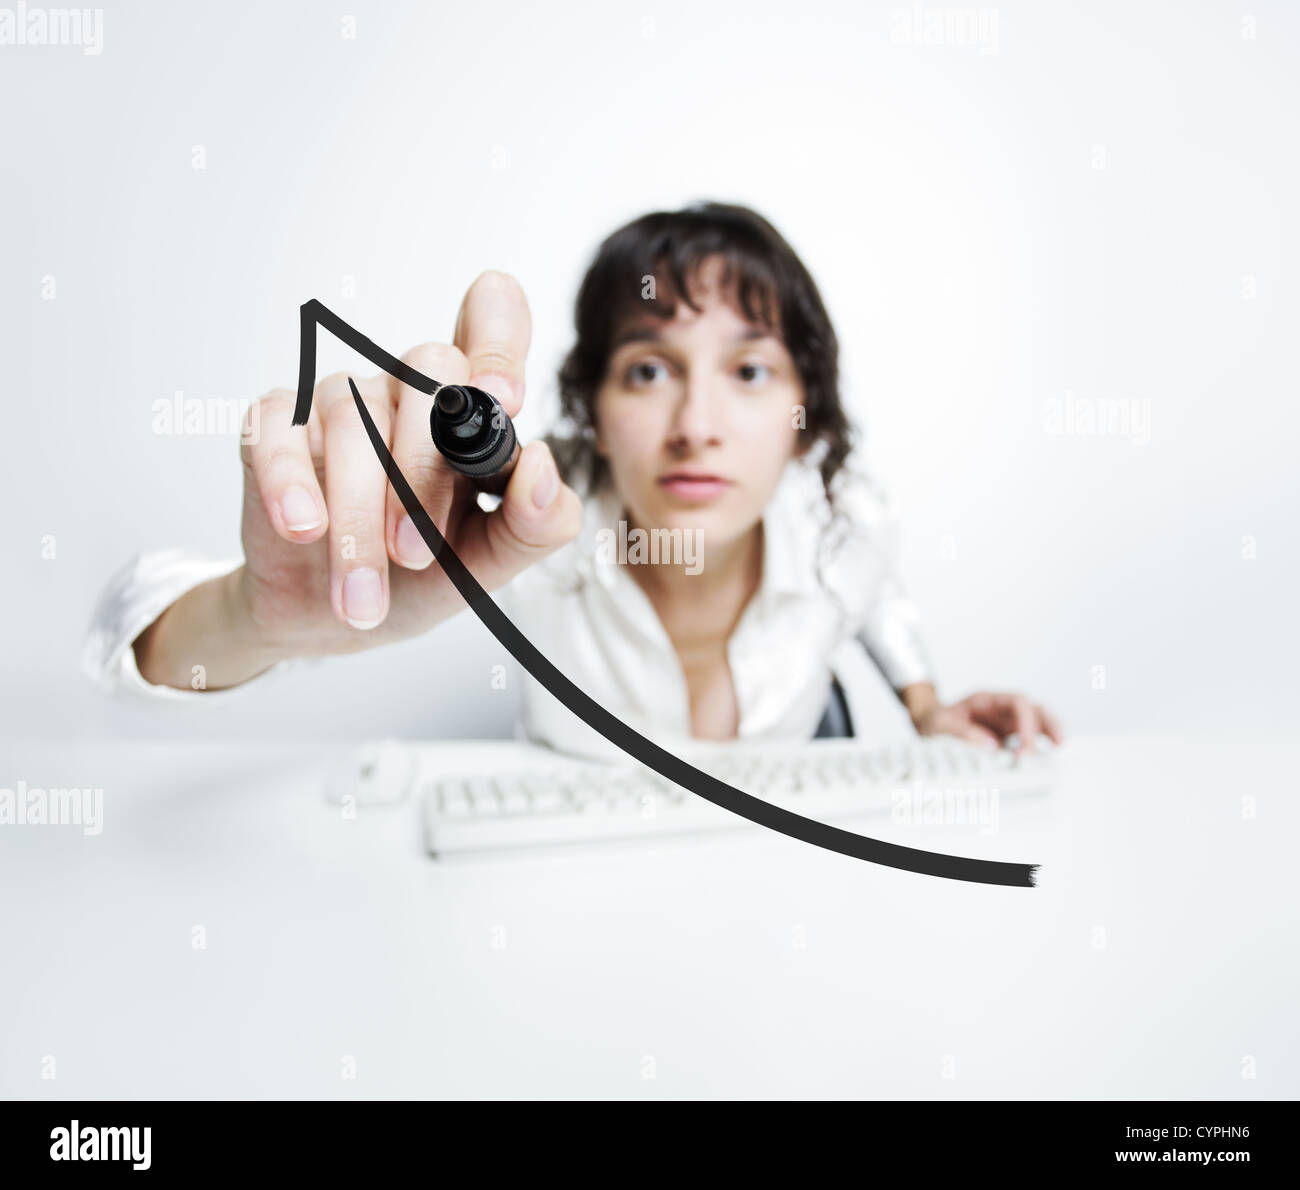 concentrated woman with a pen drawing a uptrend chart on screen - Stock Image